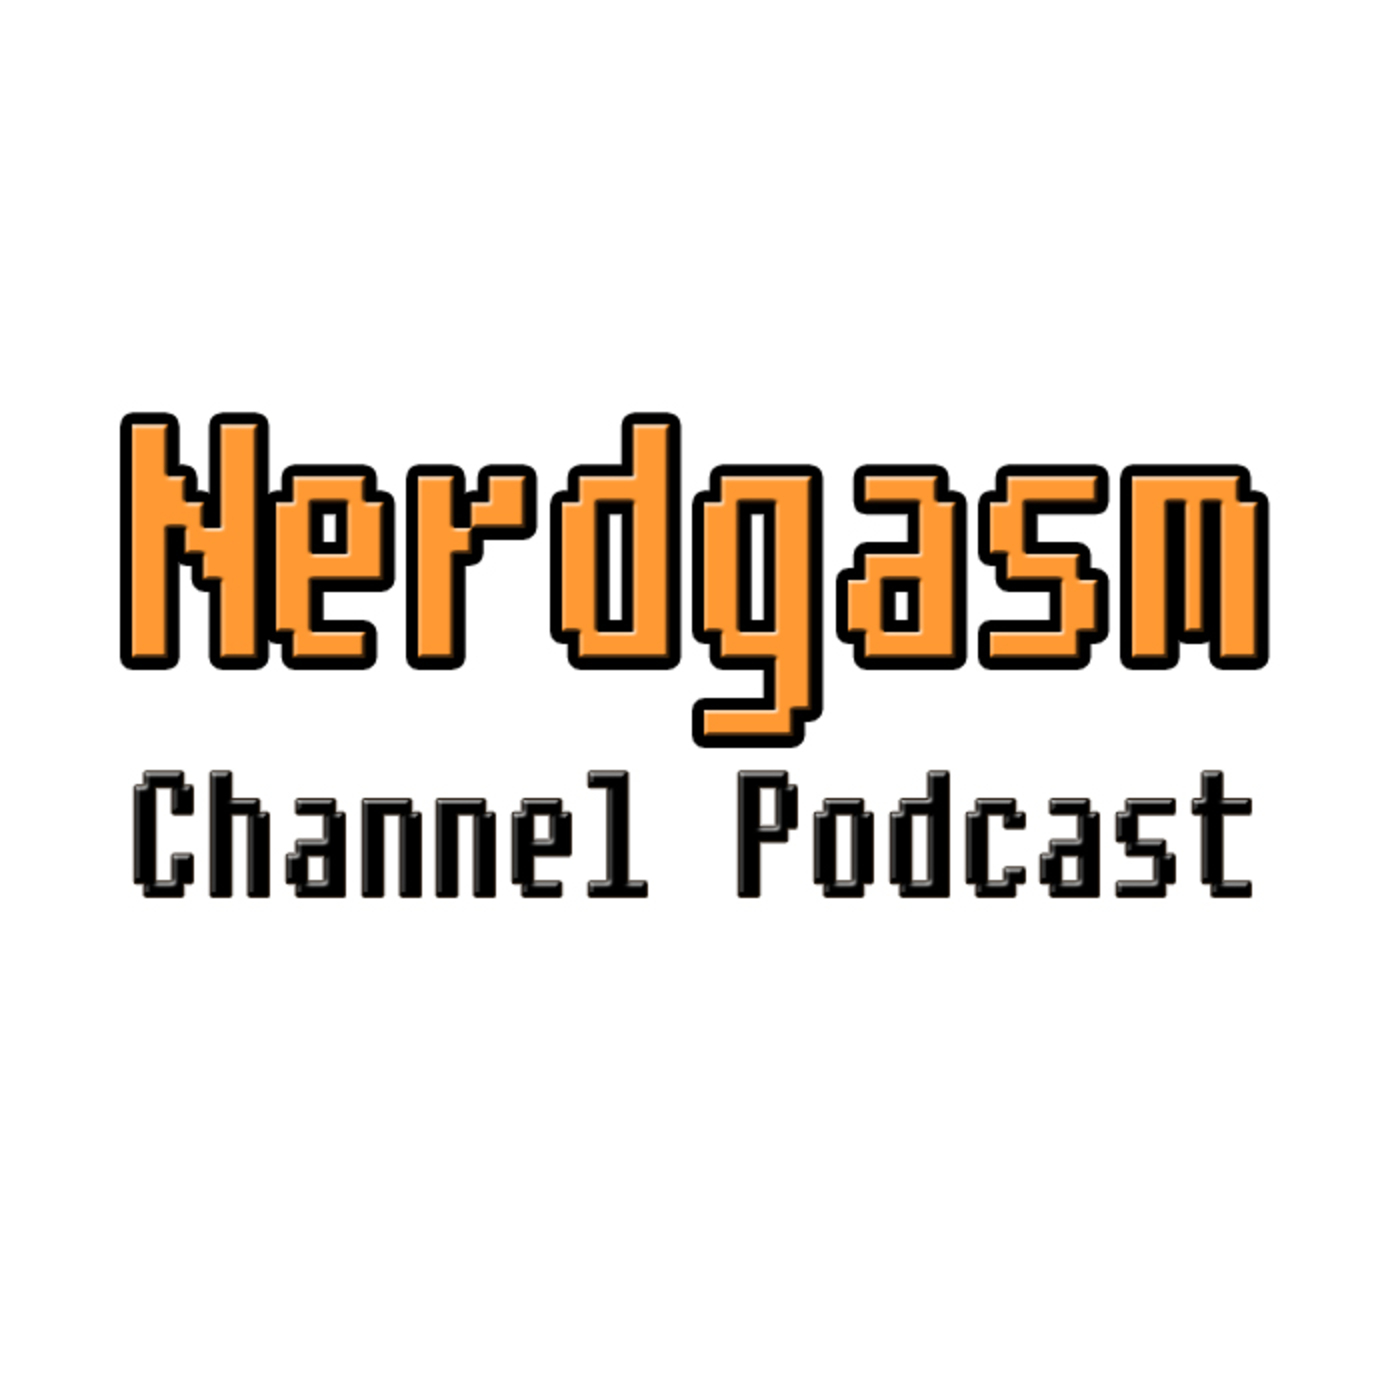 Nerdgasm Channel Podcast